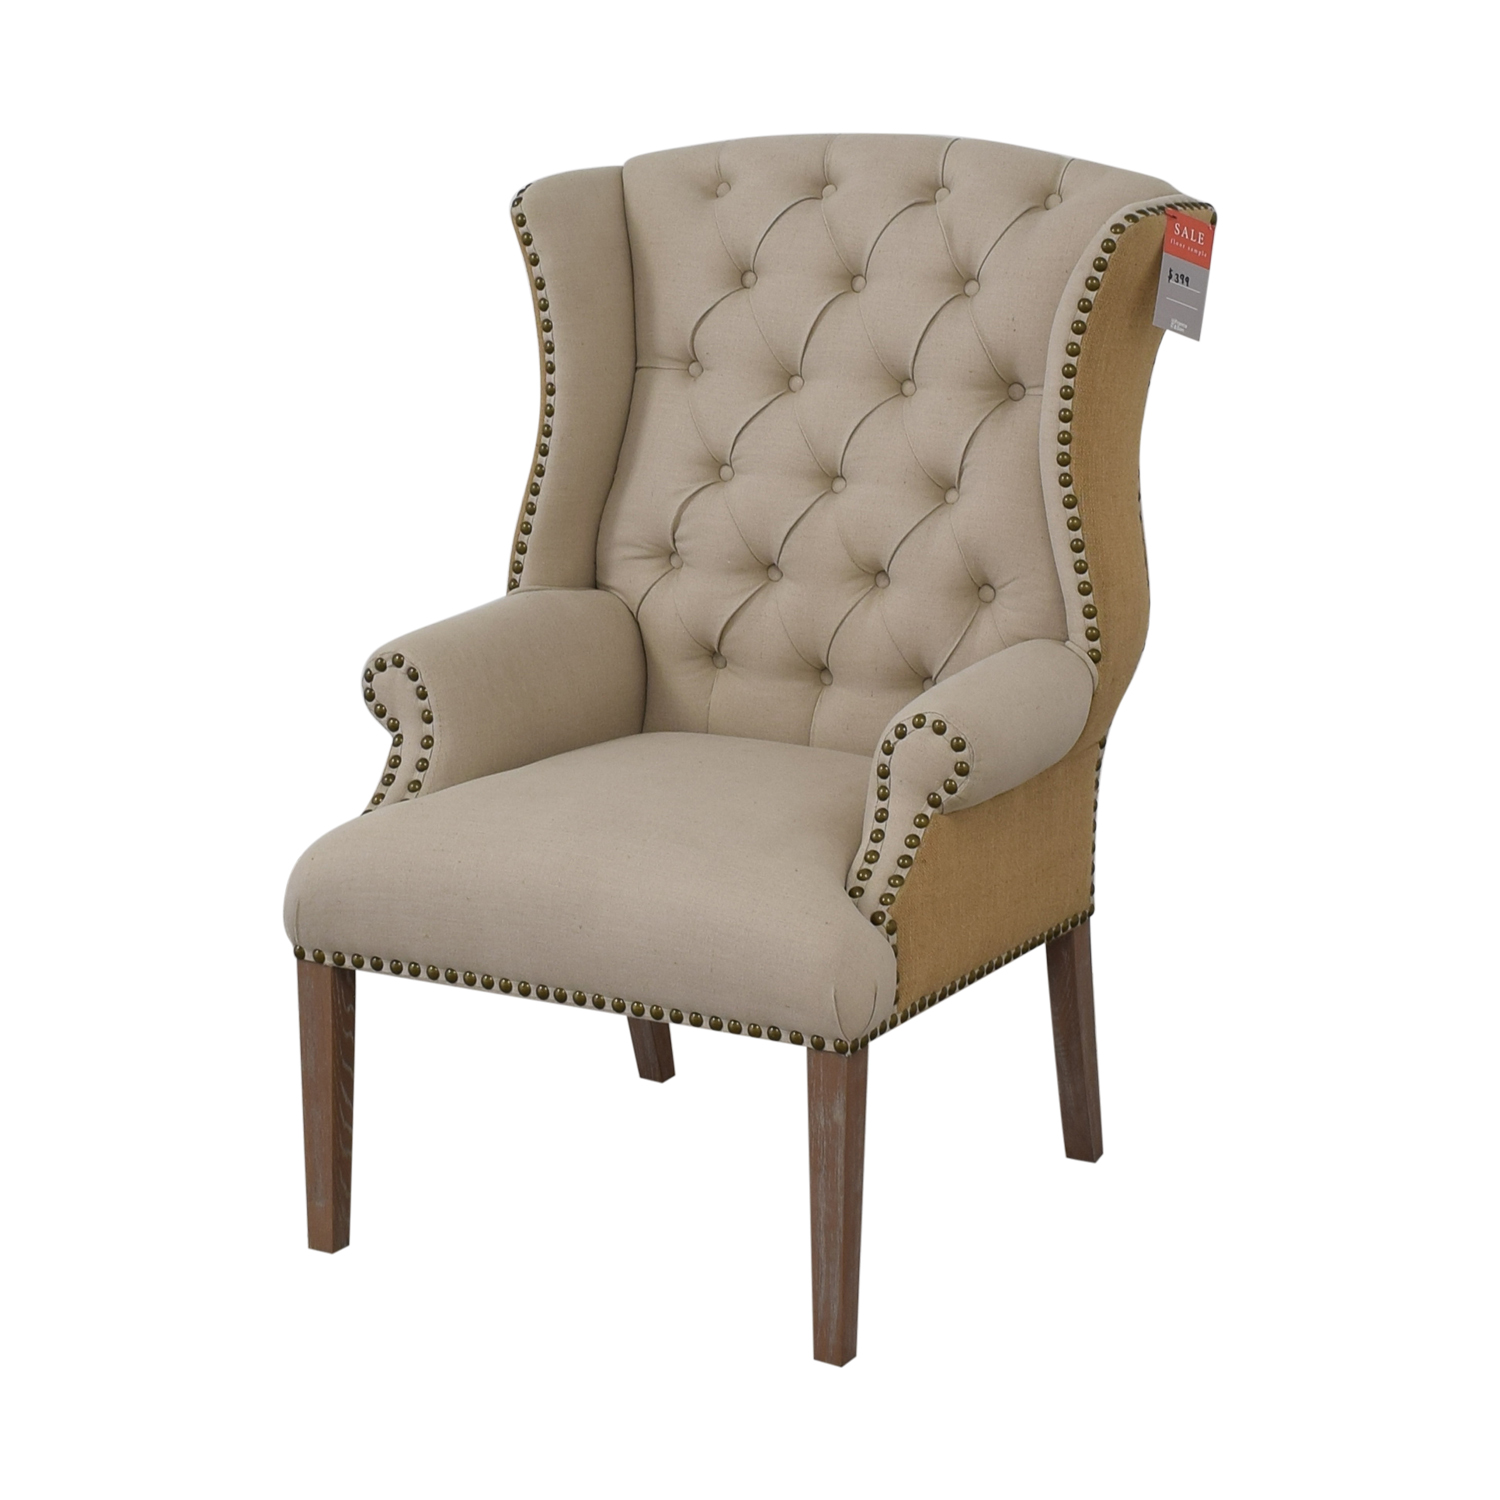 Hickory Chair Hickory Chair Traditional Lounge Chair coupon